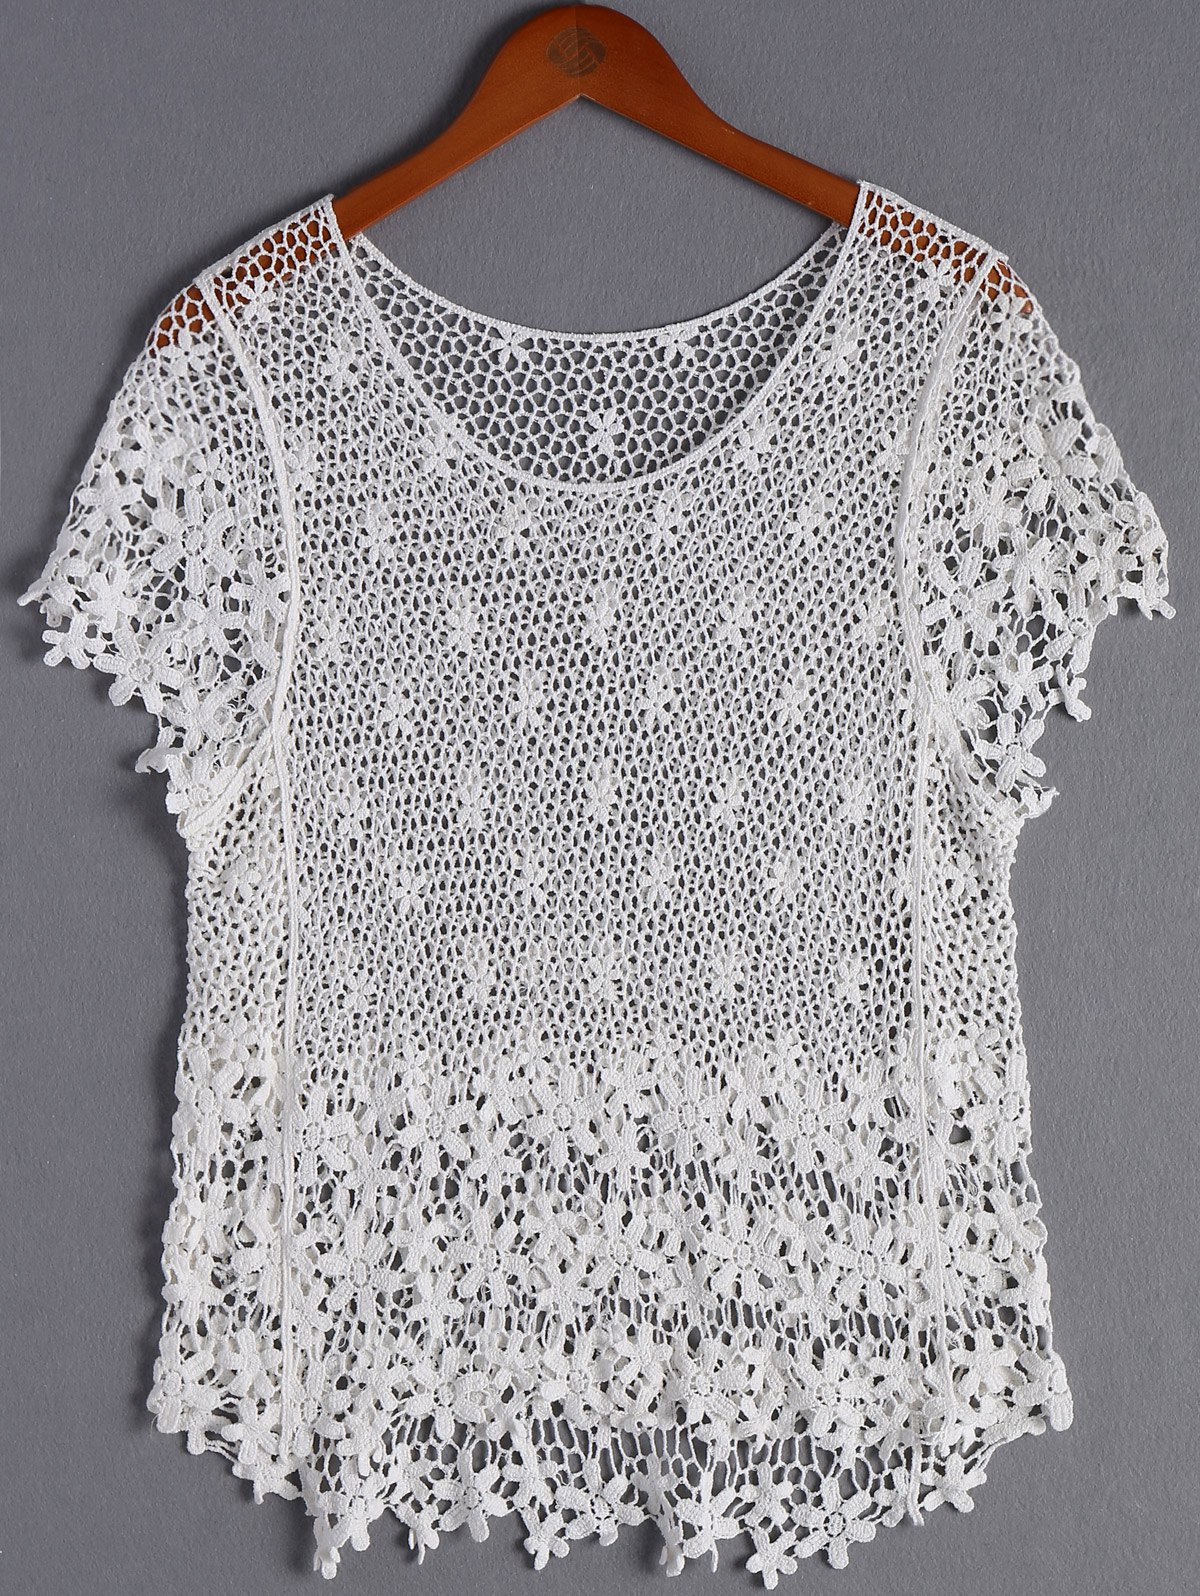 Stylish Women's Round Neck Lace Crochet Top - WHITE ONE SIZE(FIT SIZE XS TO M)